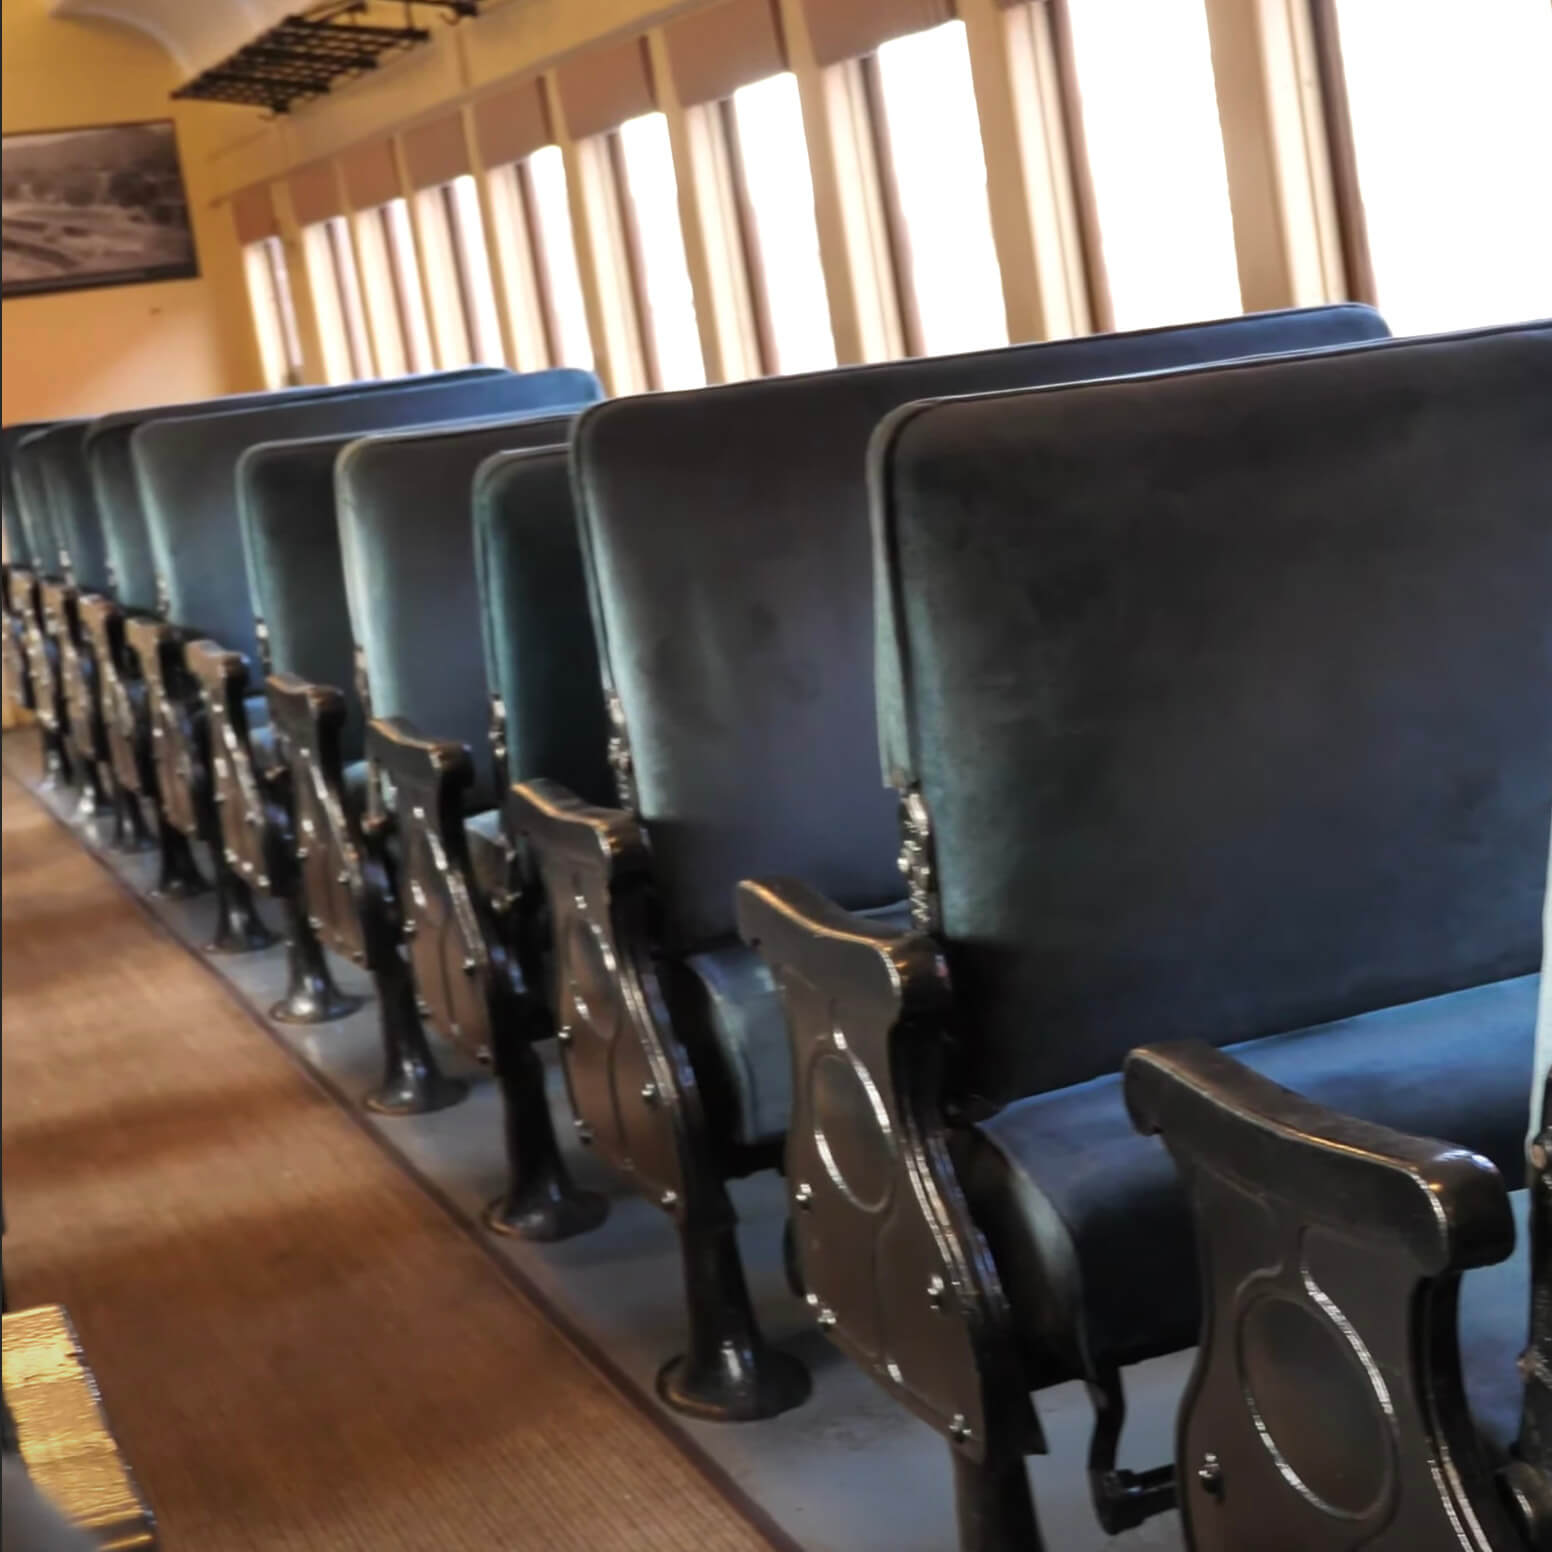 Ever Wonder About the Inside of a Passenger Train?